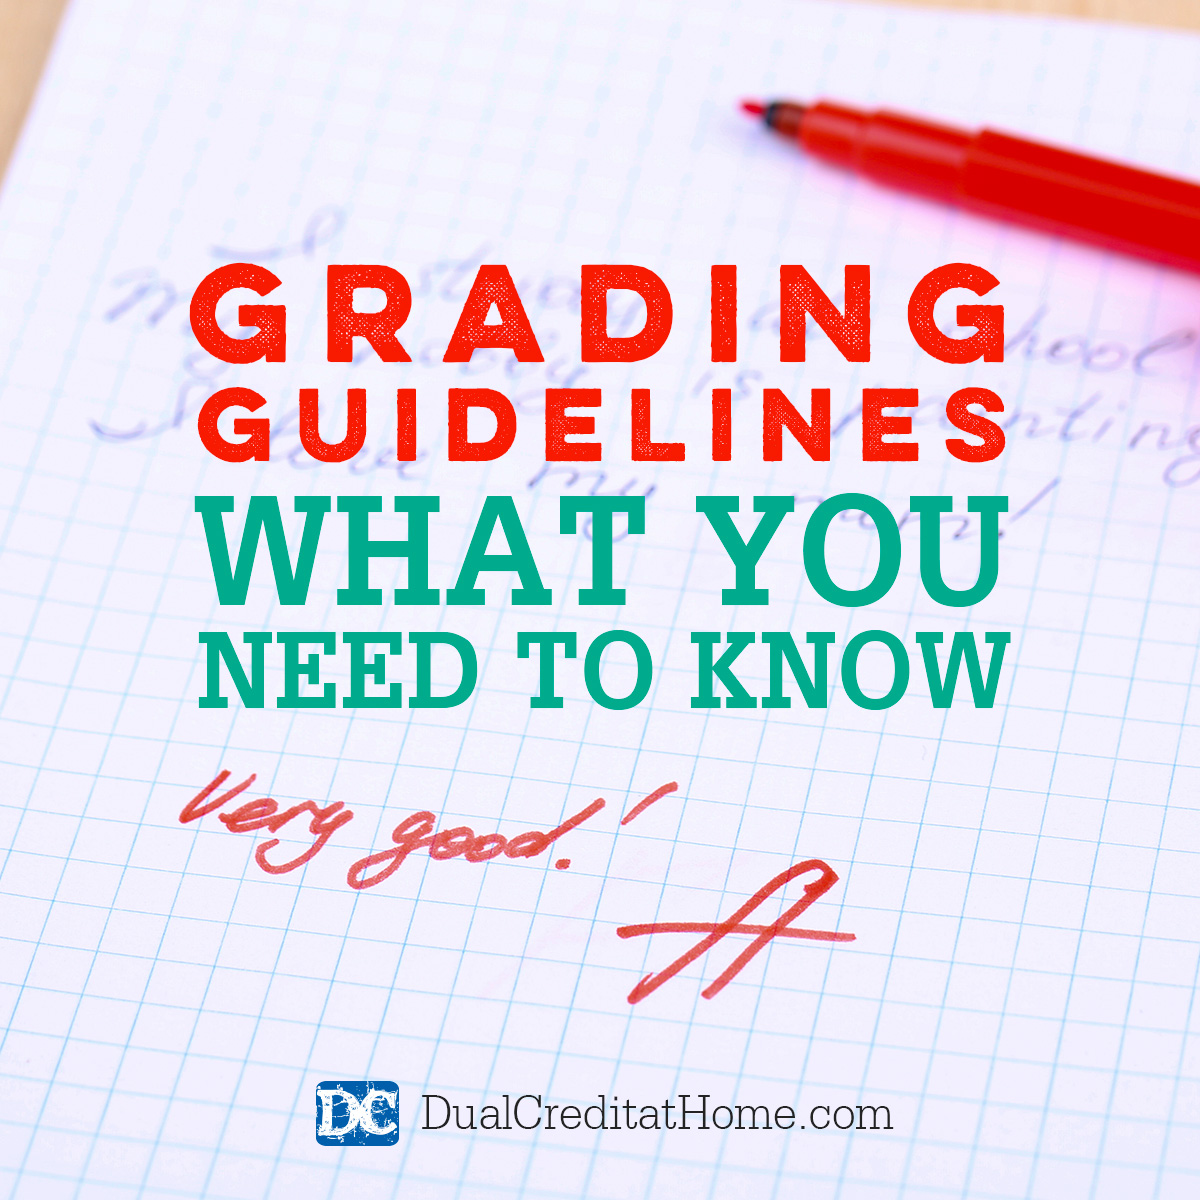 Grading Guidelines: What You Need to Know